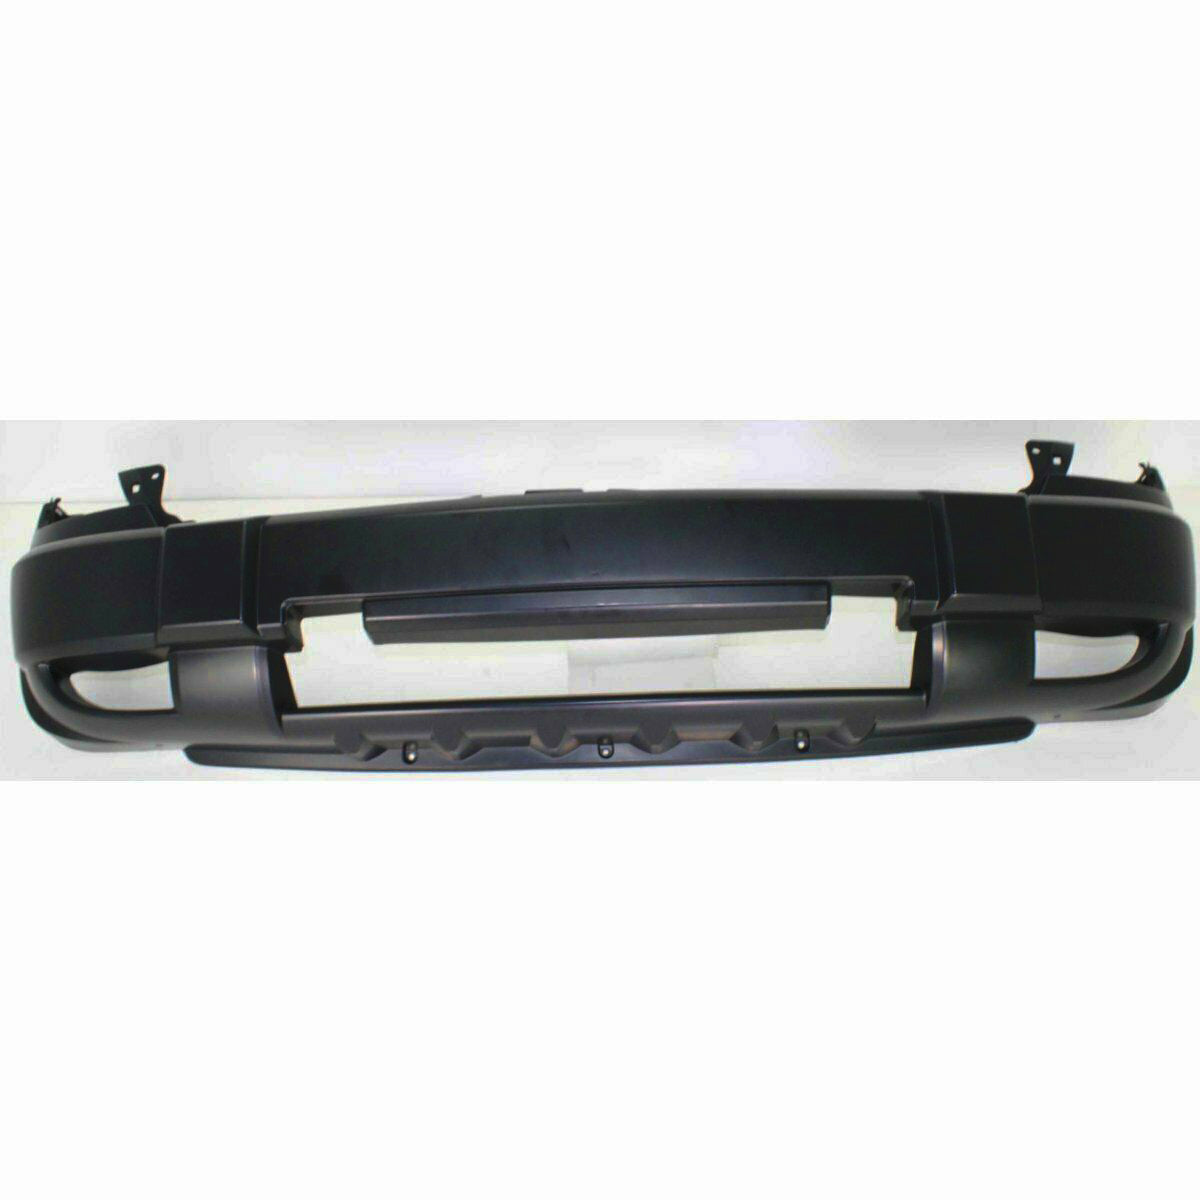 2005-2007 Jeep Liberty (W/ Tow Package) Front Bumper